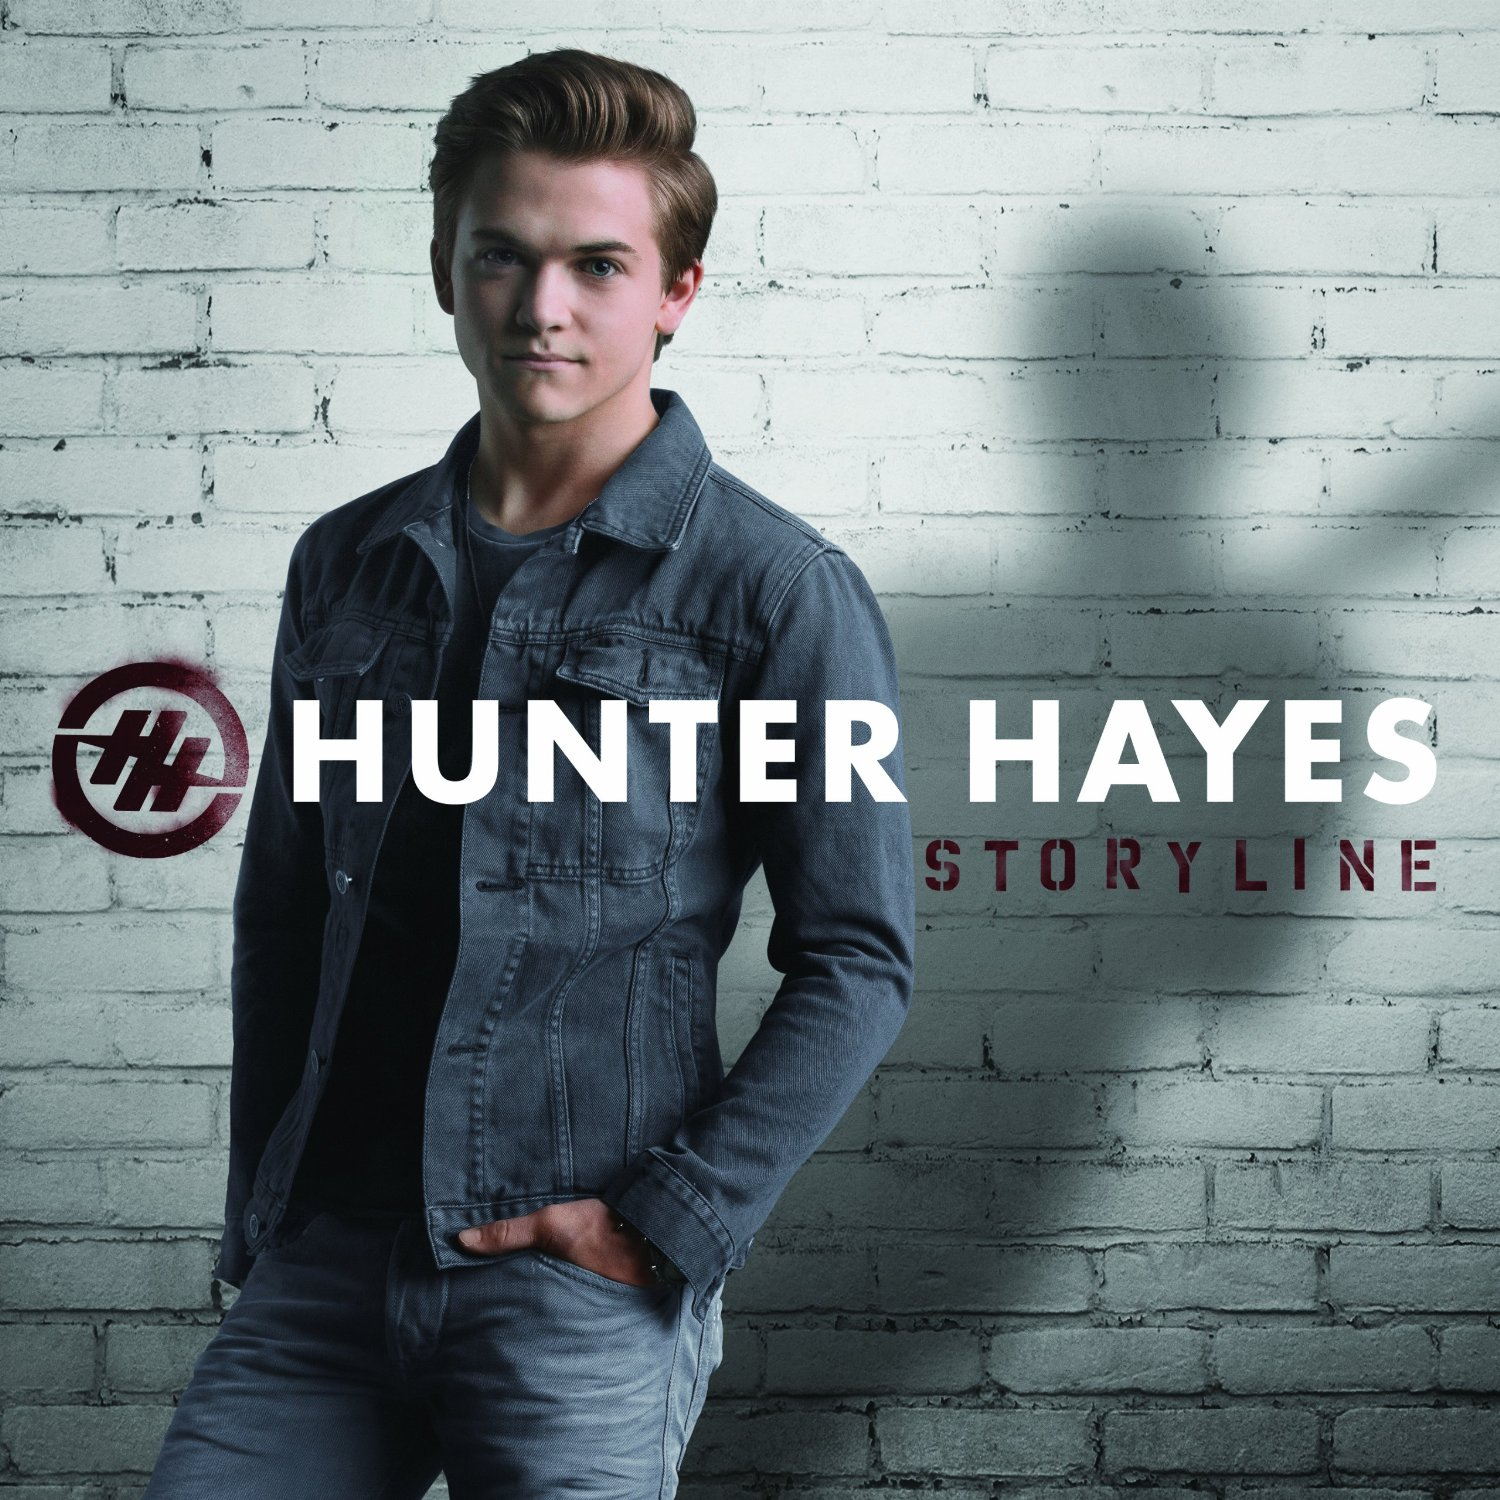 Hunter Hayes, Storyline | Album Review